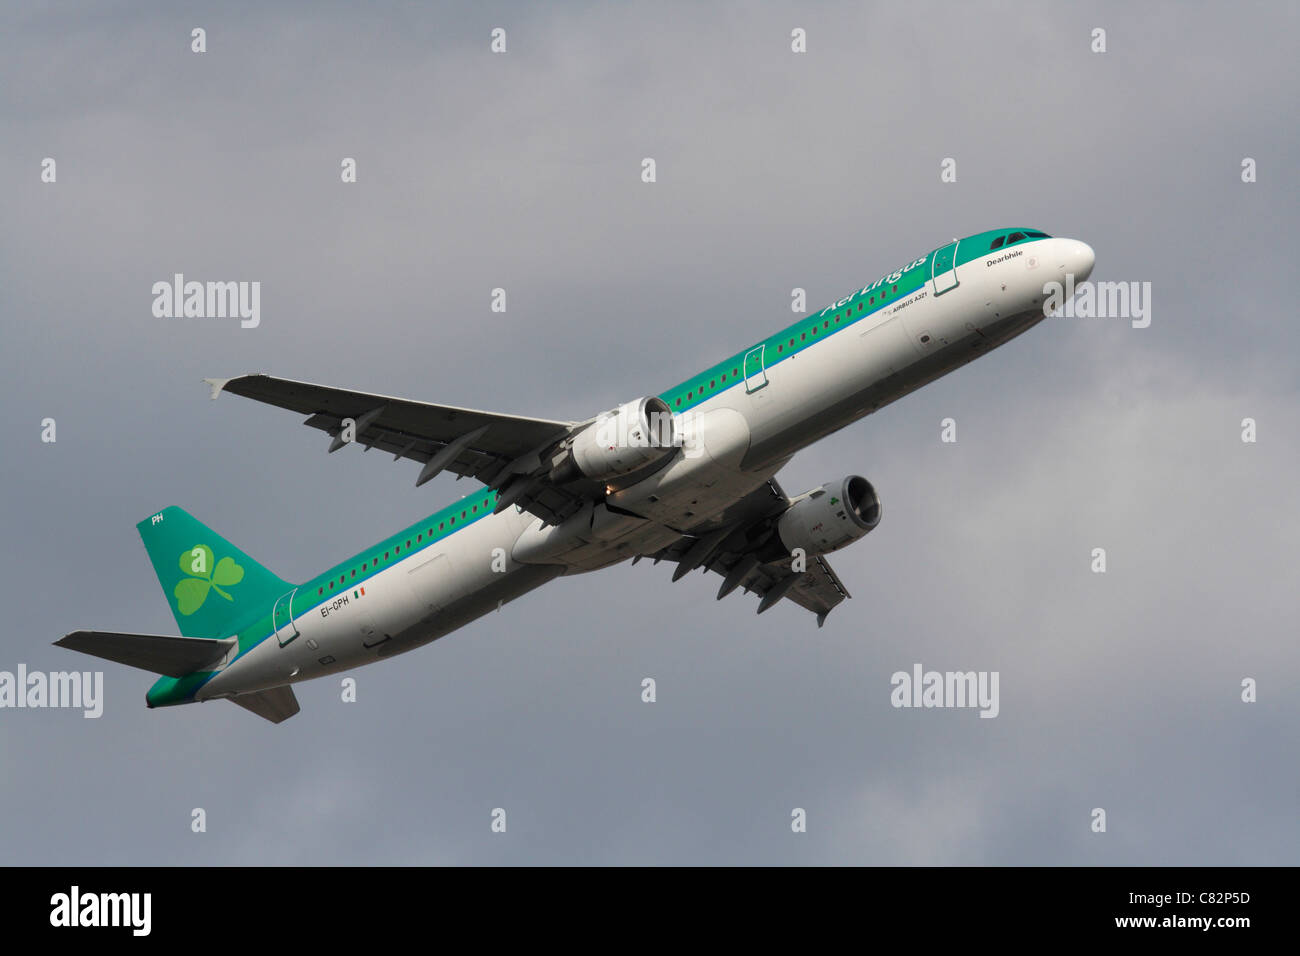 Commercial air travel. Aer Lingus Airbus A321 passenger jet plane flying on takeoff - Stock Image